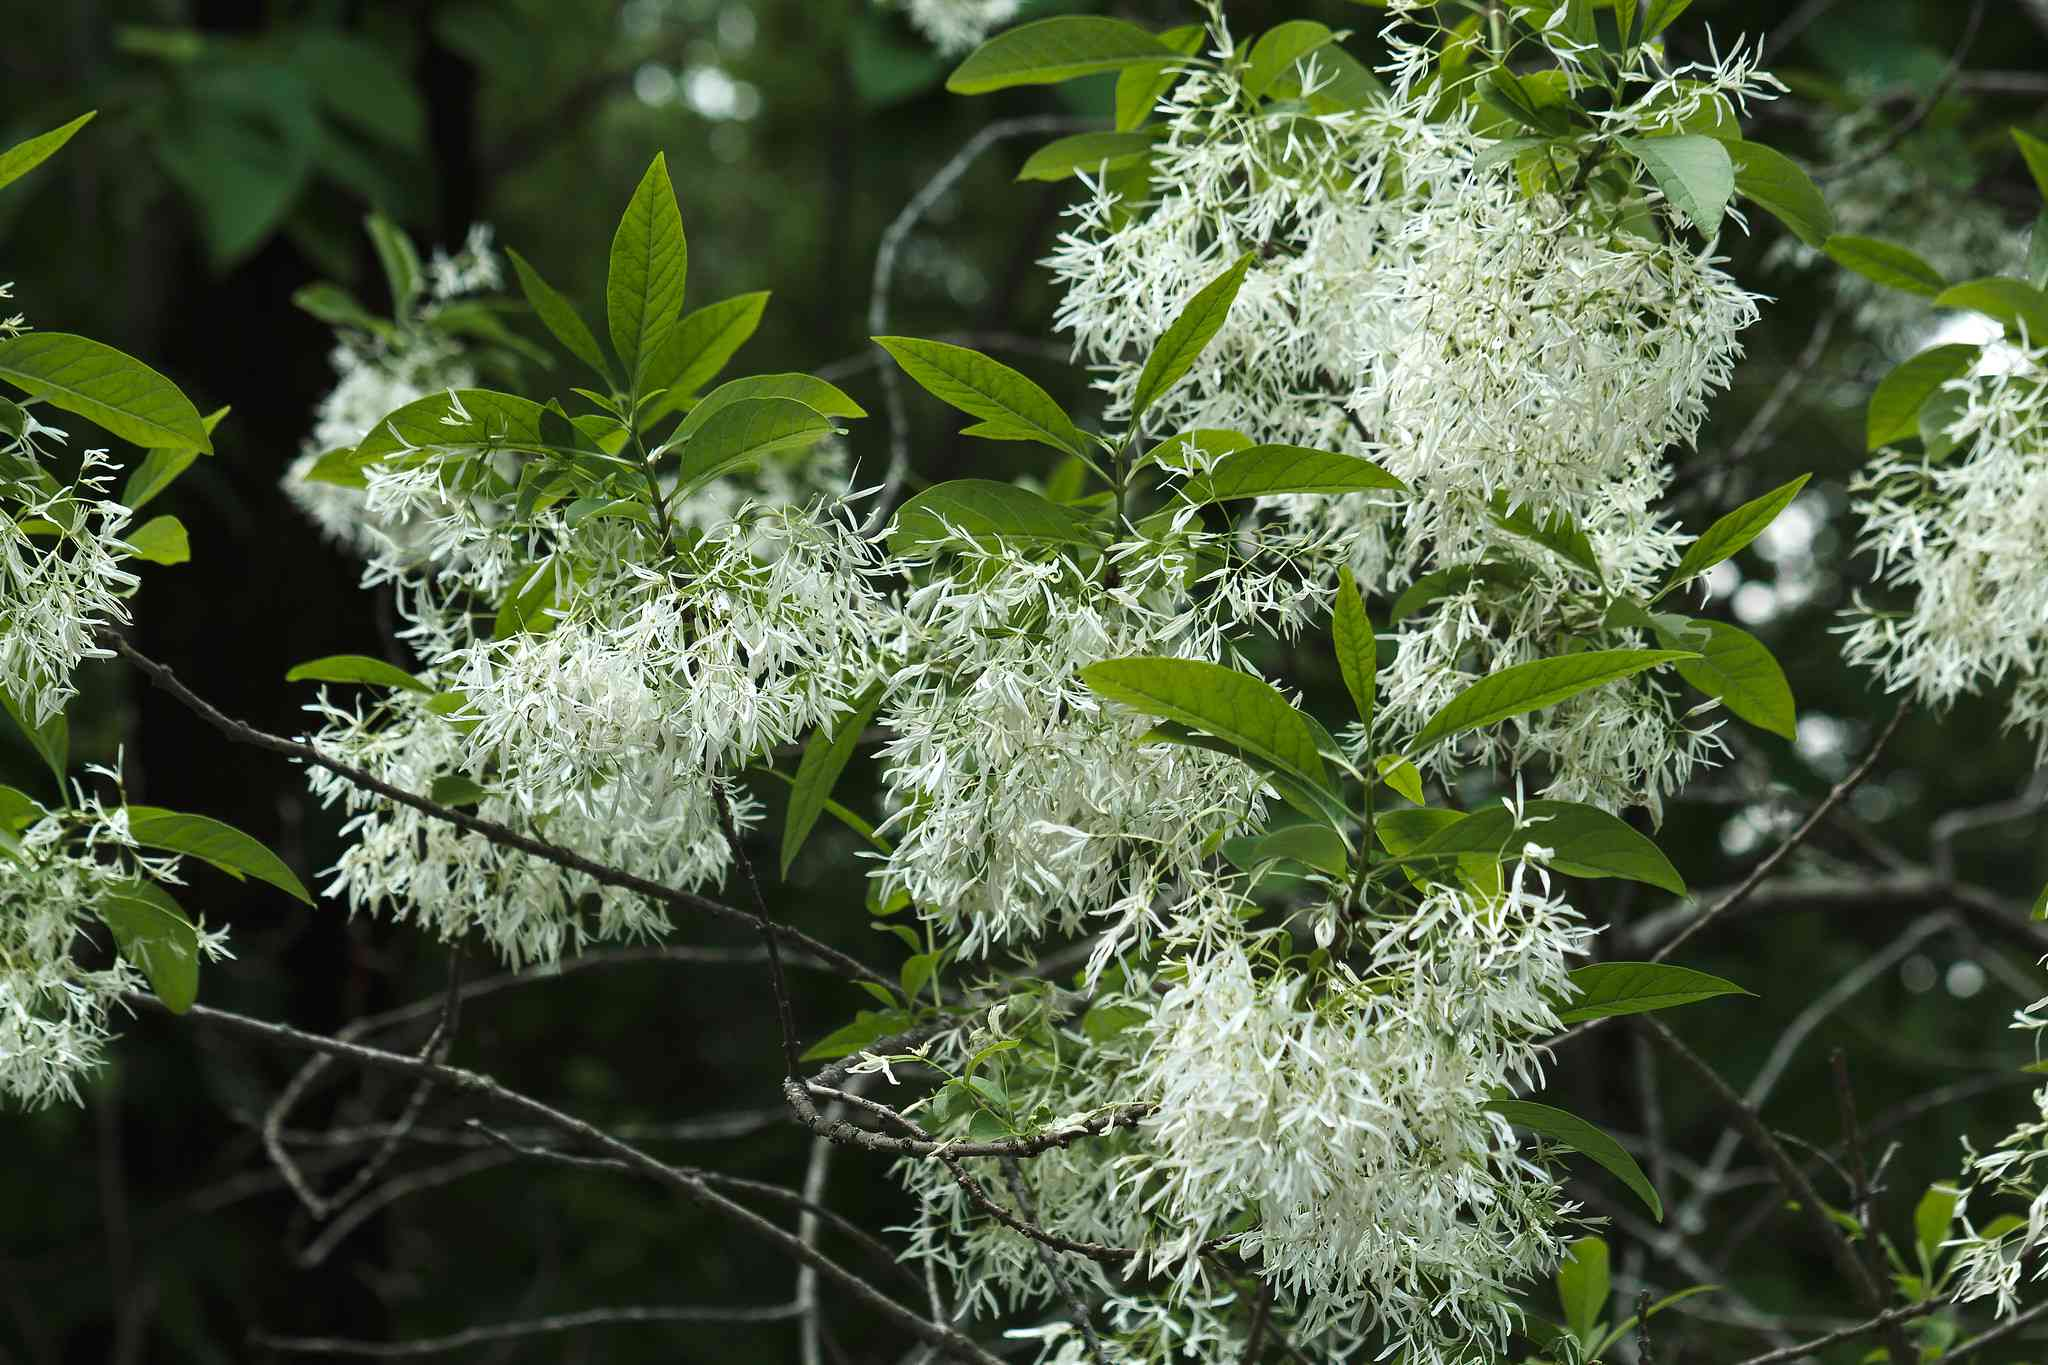 Close up shot of white blossoms and green leaves of a Fringe tree.